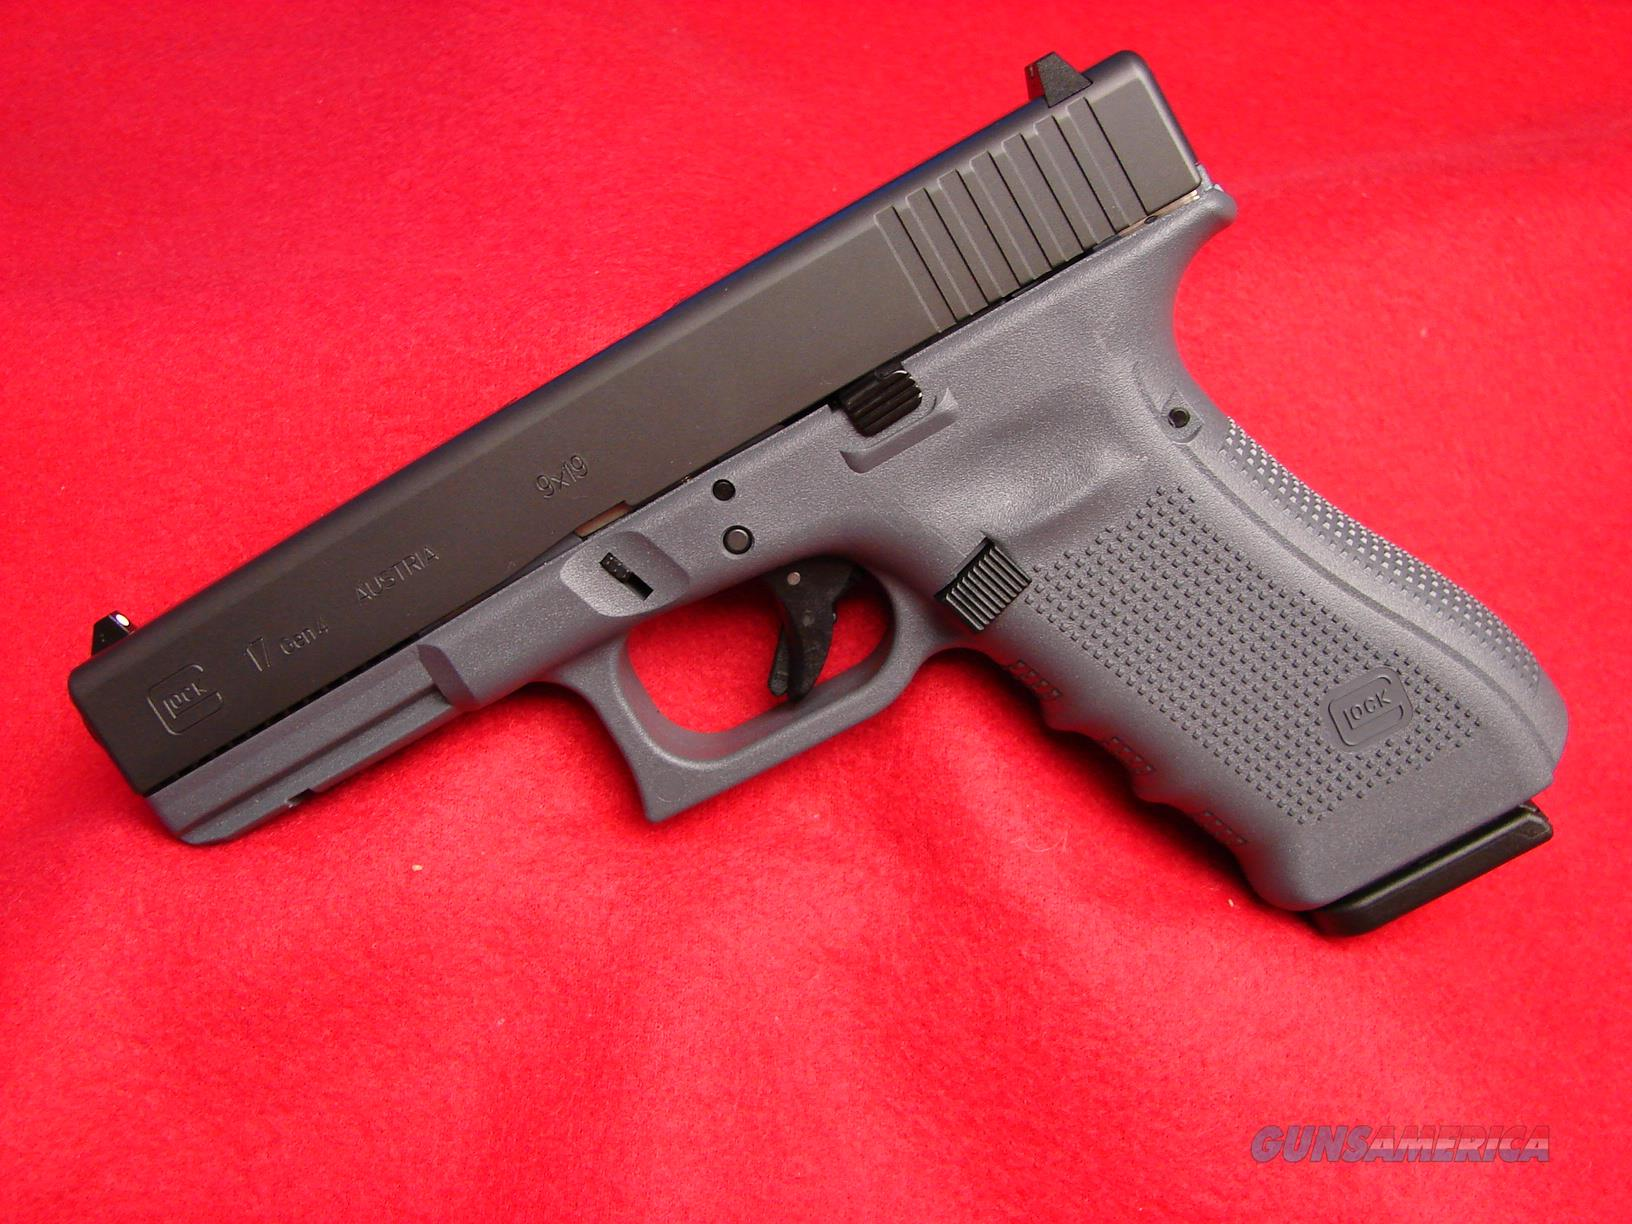 NIB Glock 17 - Gen 4 with Gray Frame in 9 mm   Guns > Pistols > Glock Pistols > 17